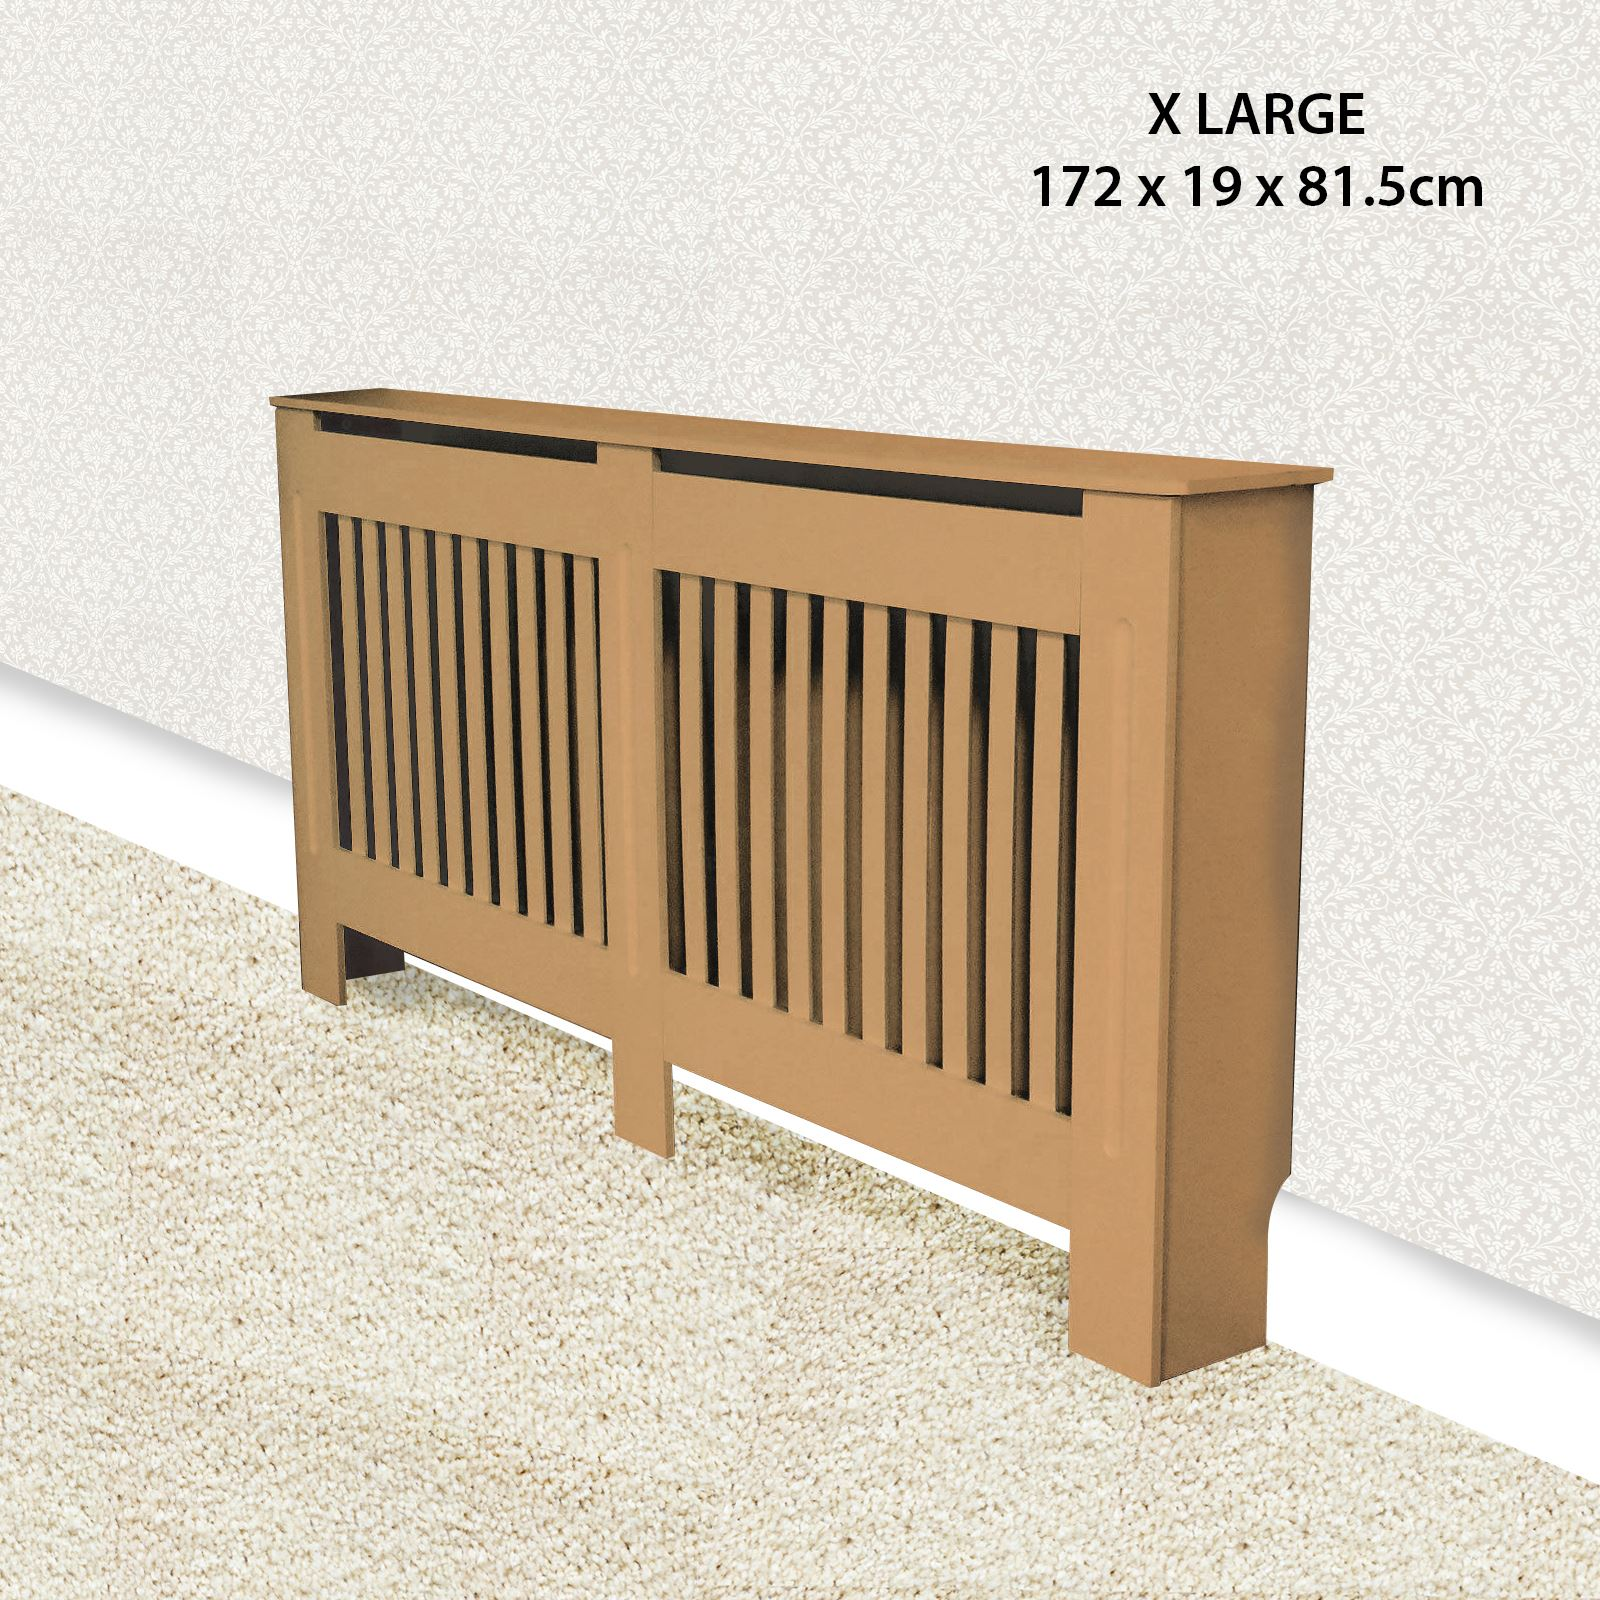 Traditional-Radiator-Cover-Cabinet-Vertical-Slatted-MDF-Wood-Small-Large-Unit thumbnail 13